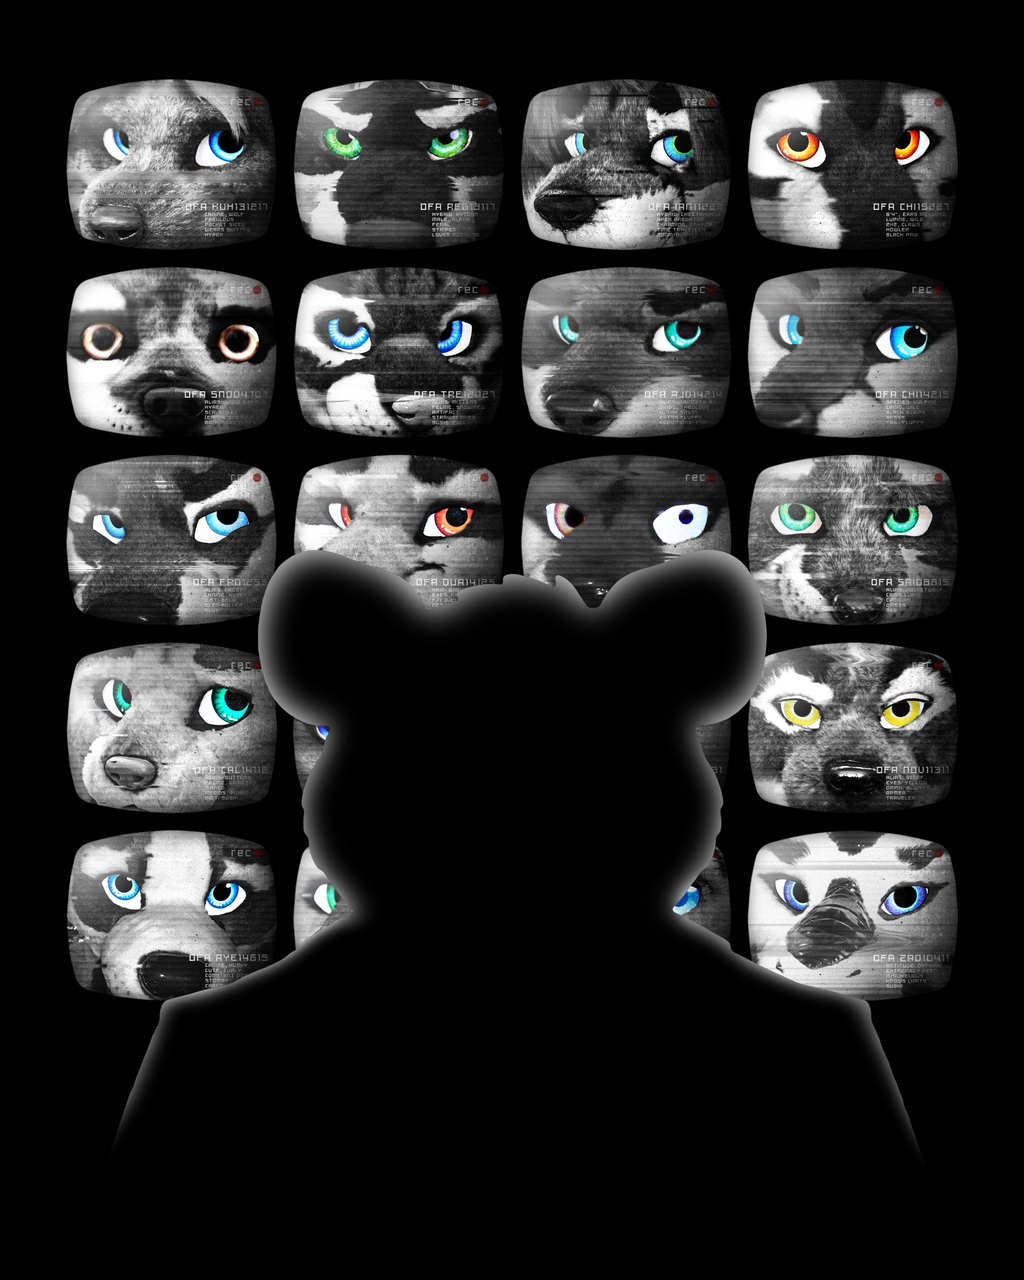 Most recent image: OneFurAll at BLFC - Smile for the Cameras T-Shirt Design